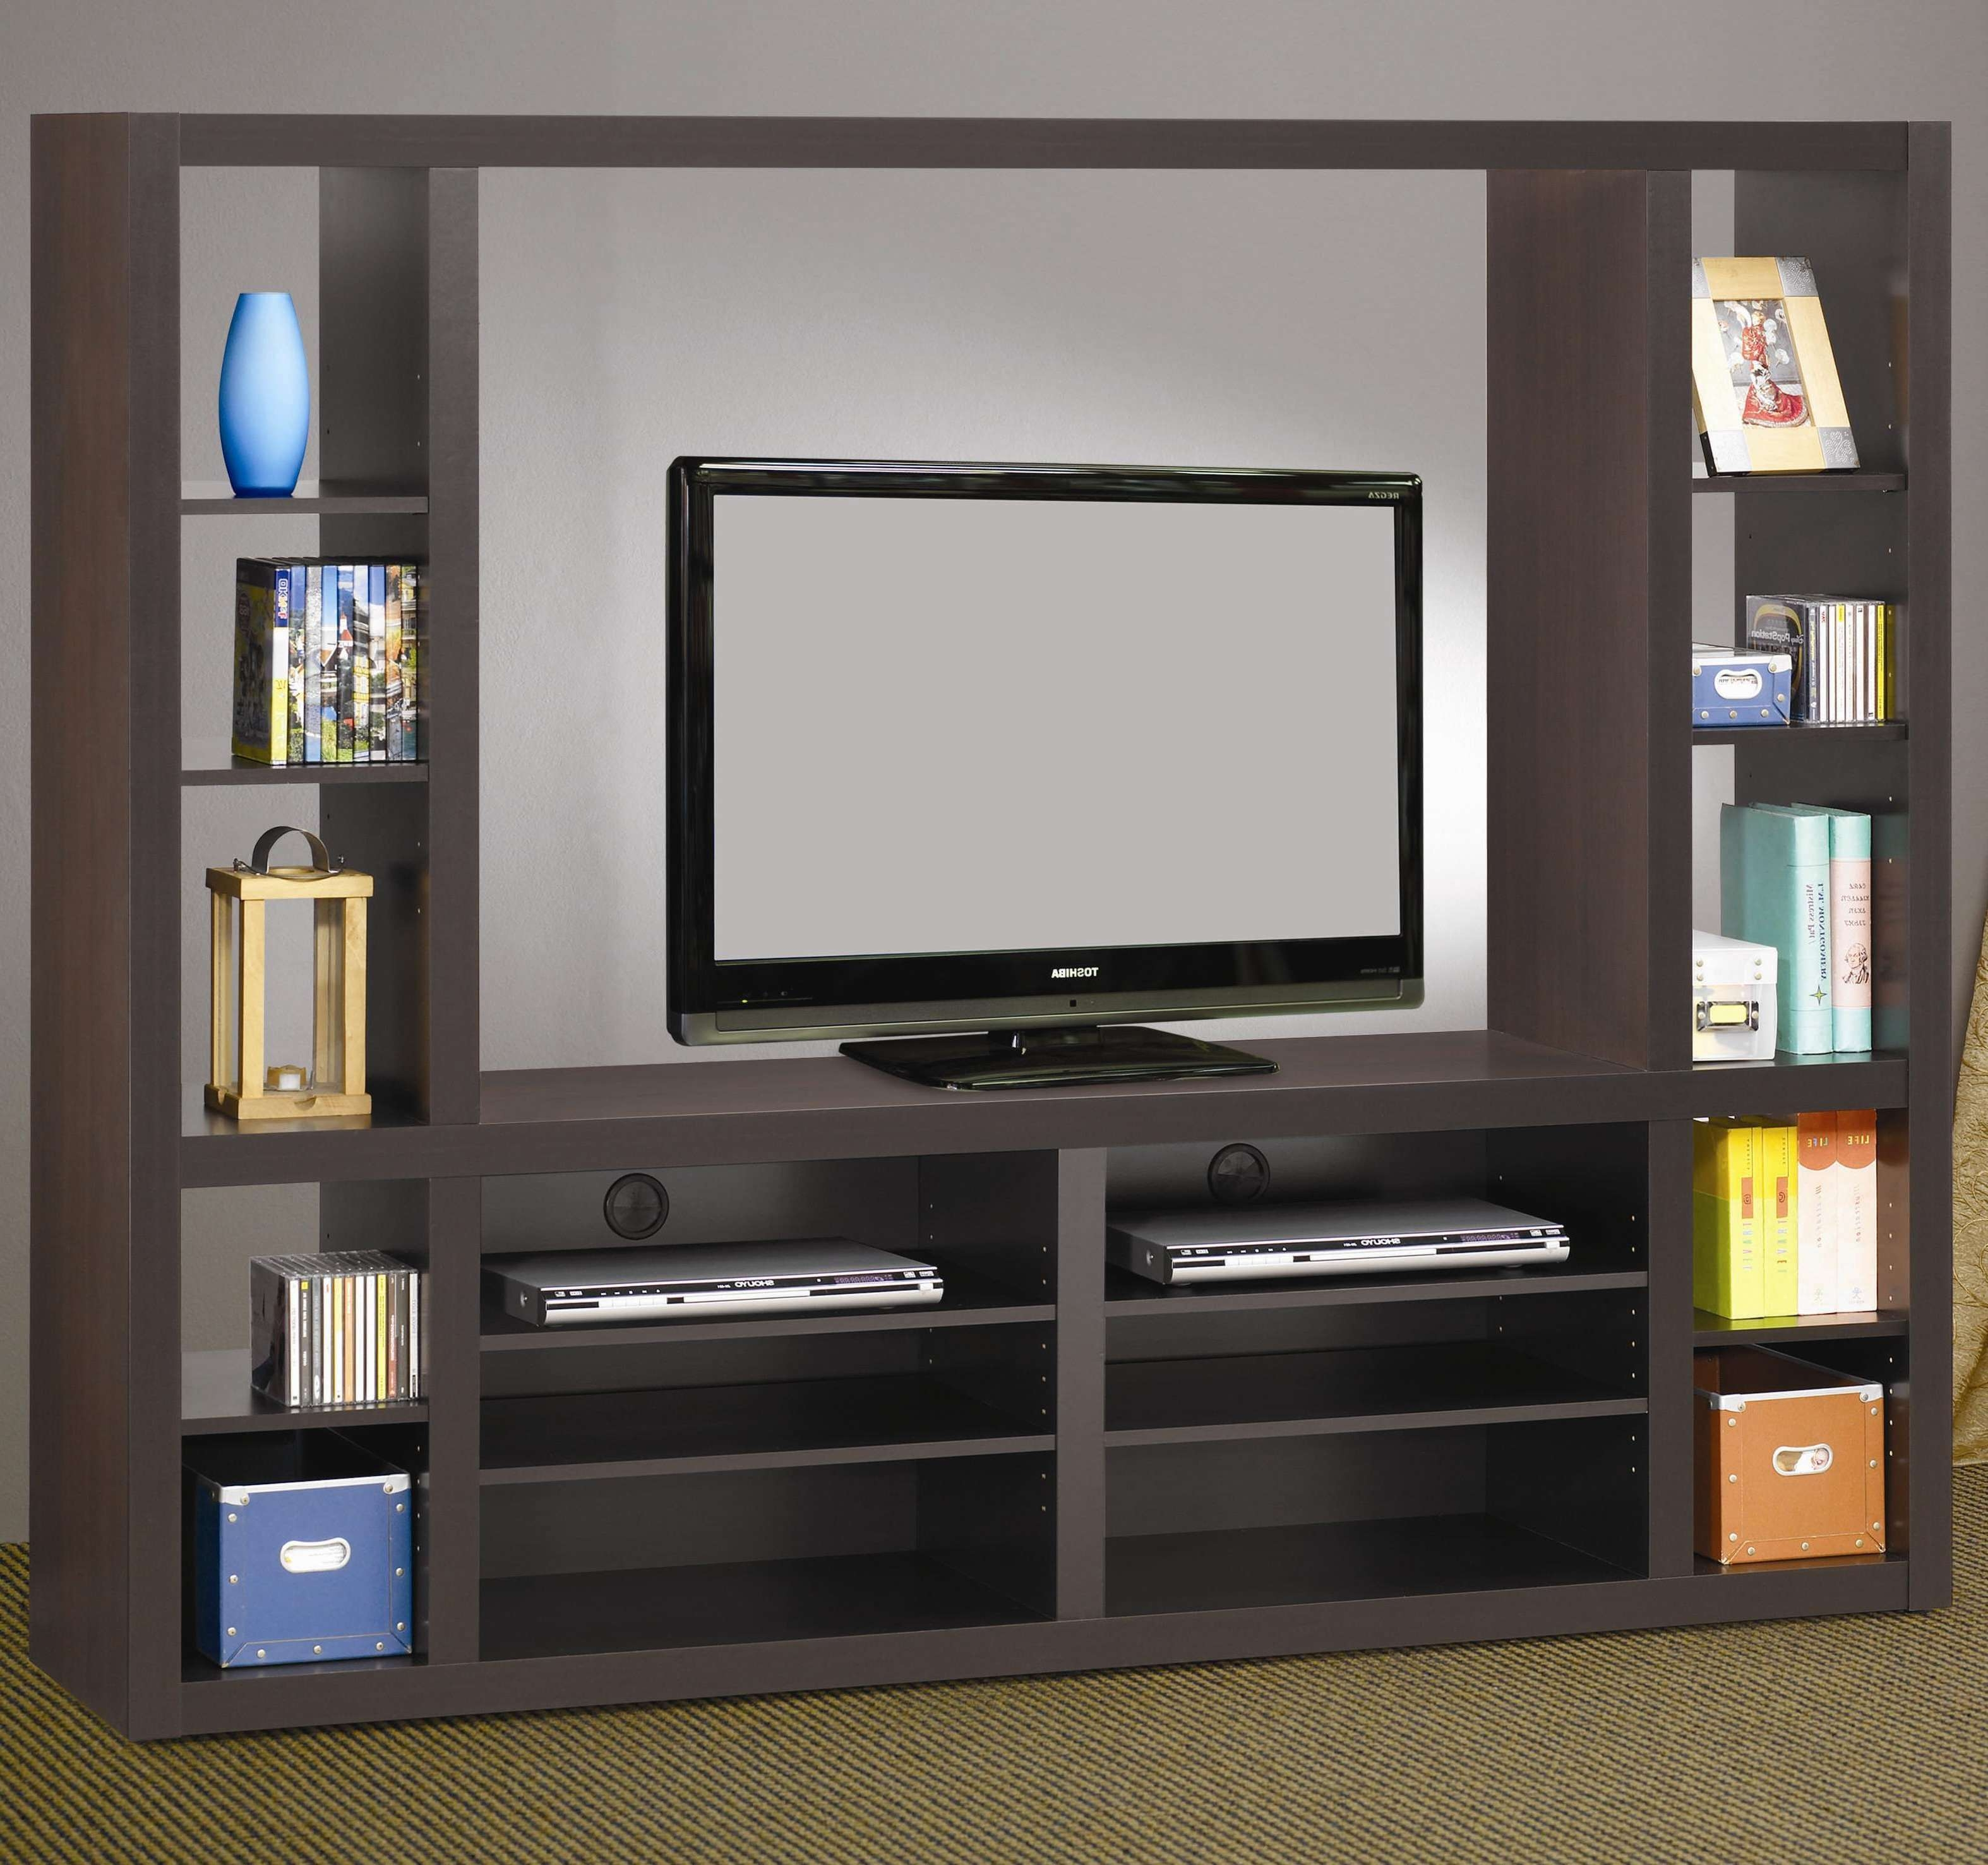 Living Room : Awesome Grey Wood Modern Design Elegant Wall Units With Regard To Wall Display Units And Tv Cabinets (View 8 of 20)